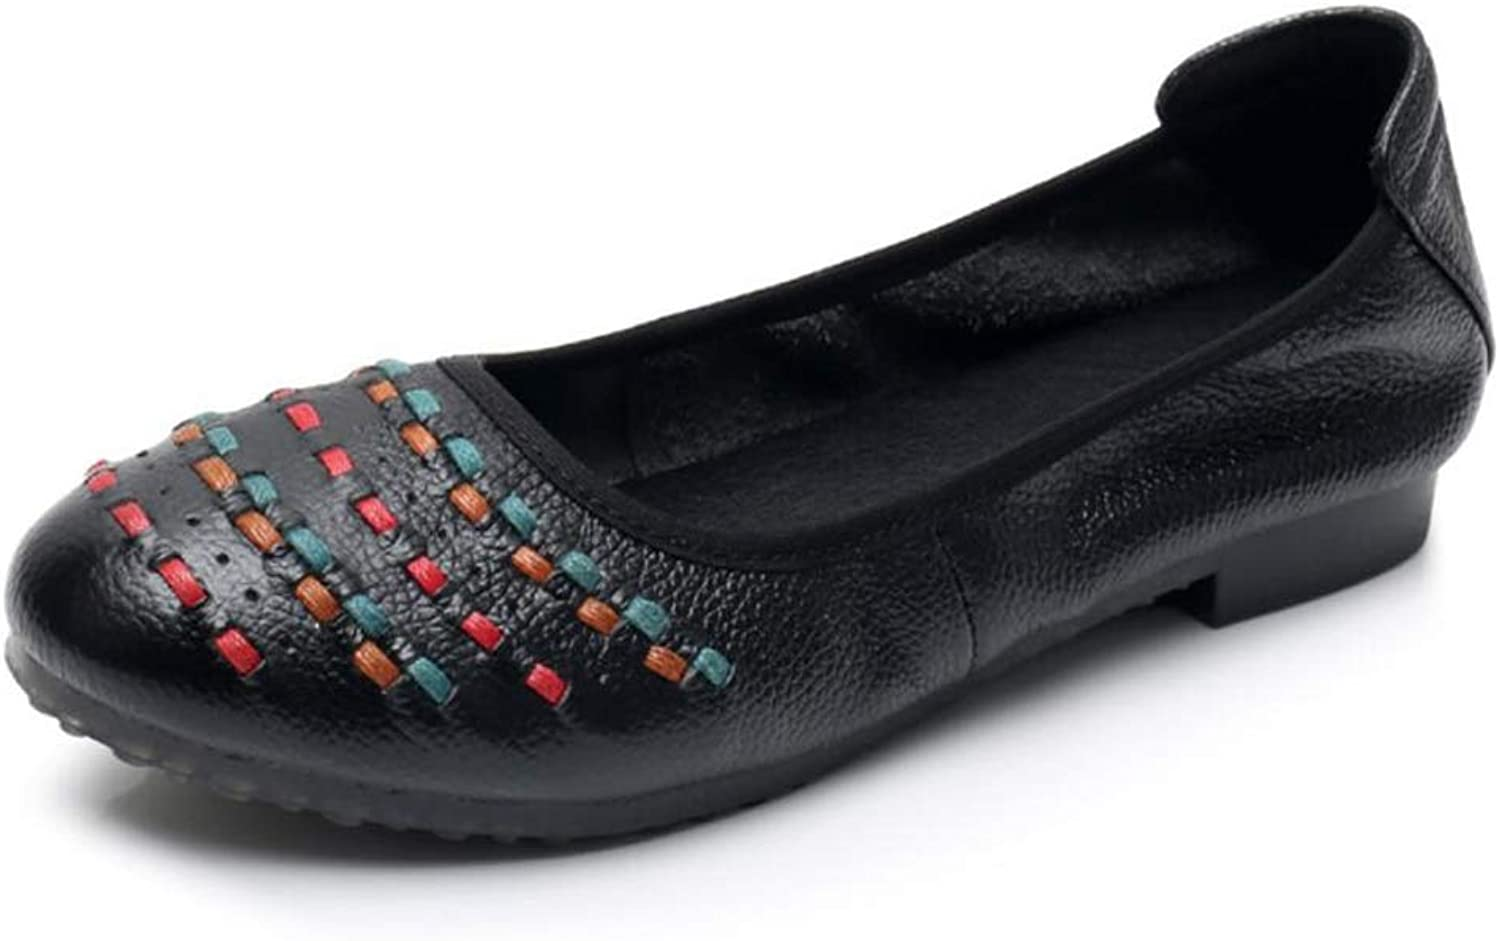 Walking shoes for Women Ballet Flats Style for Every Day Wear Driving Walking